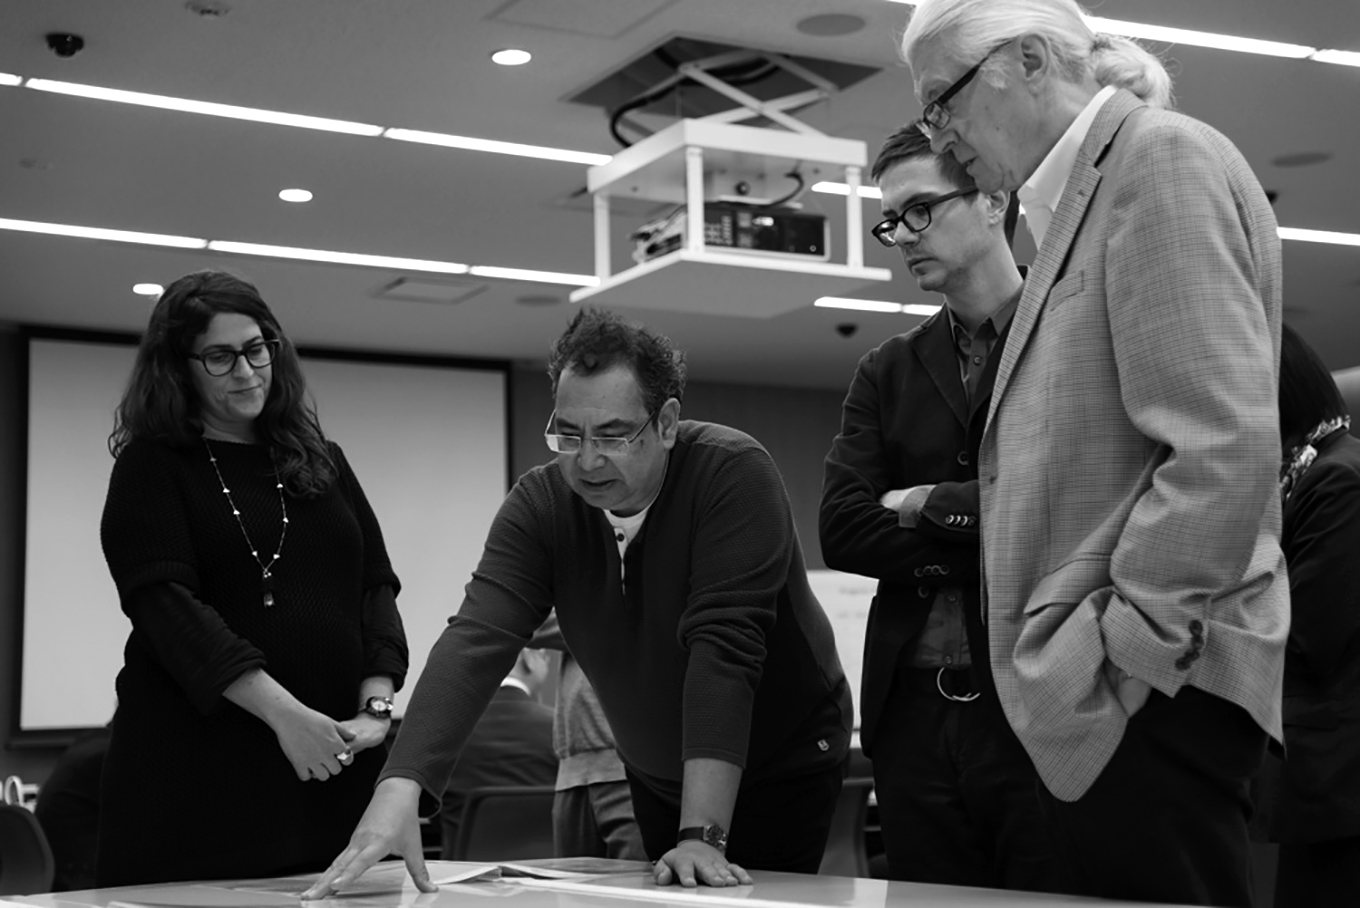 Photograph of Sara Soskolne, Fred Smeijers, Cyrus Highsmith, and Matthew Carter judging the 2014 Morisawa Type Design Competition